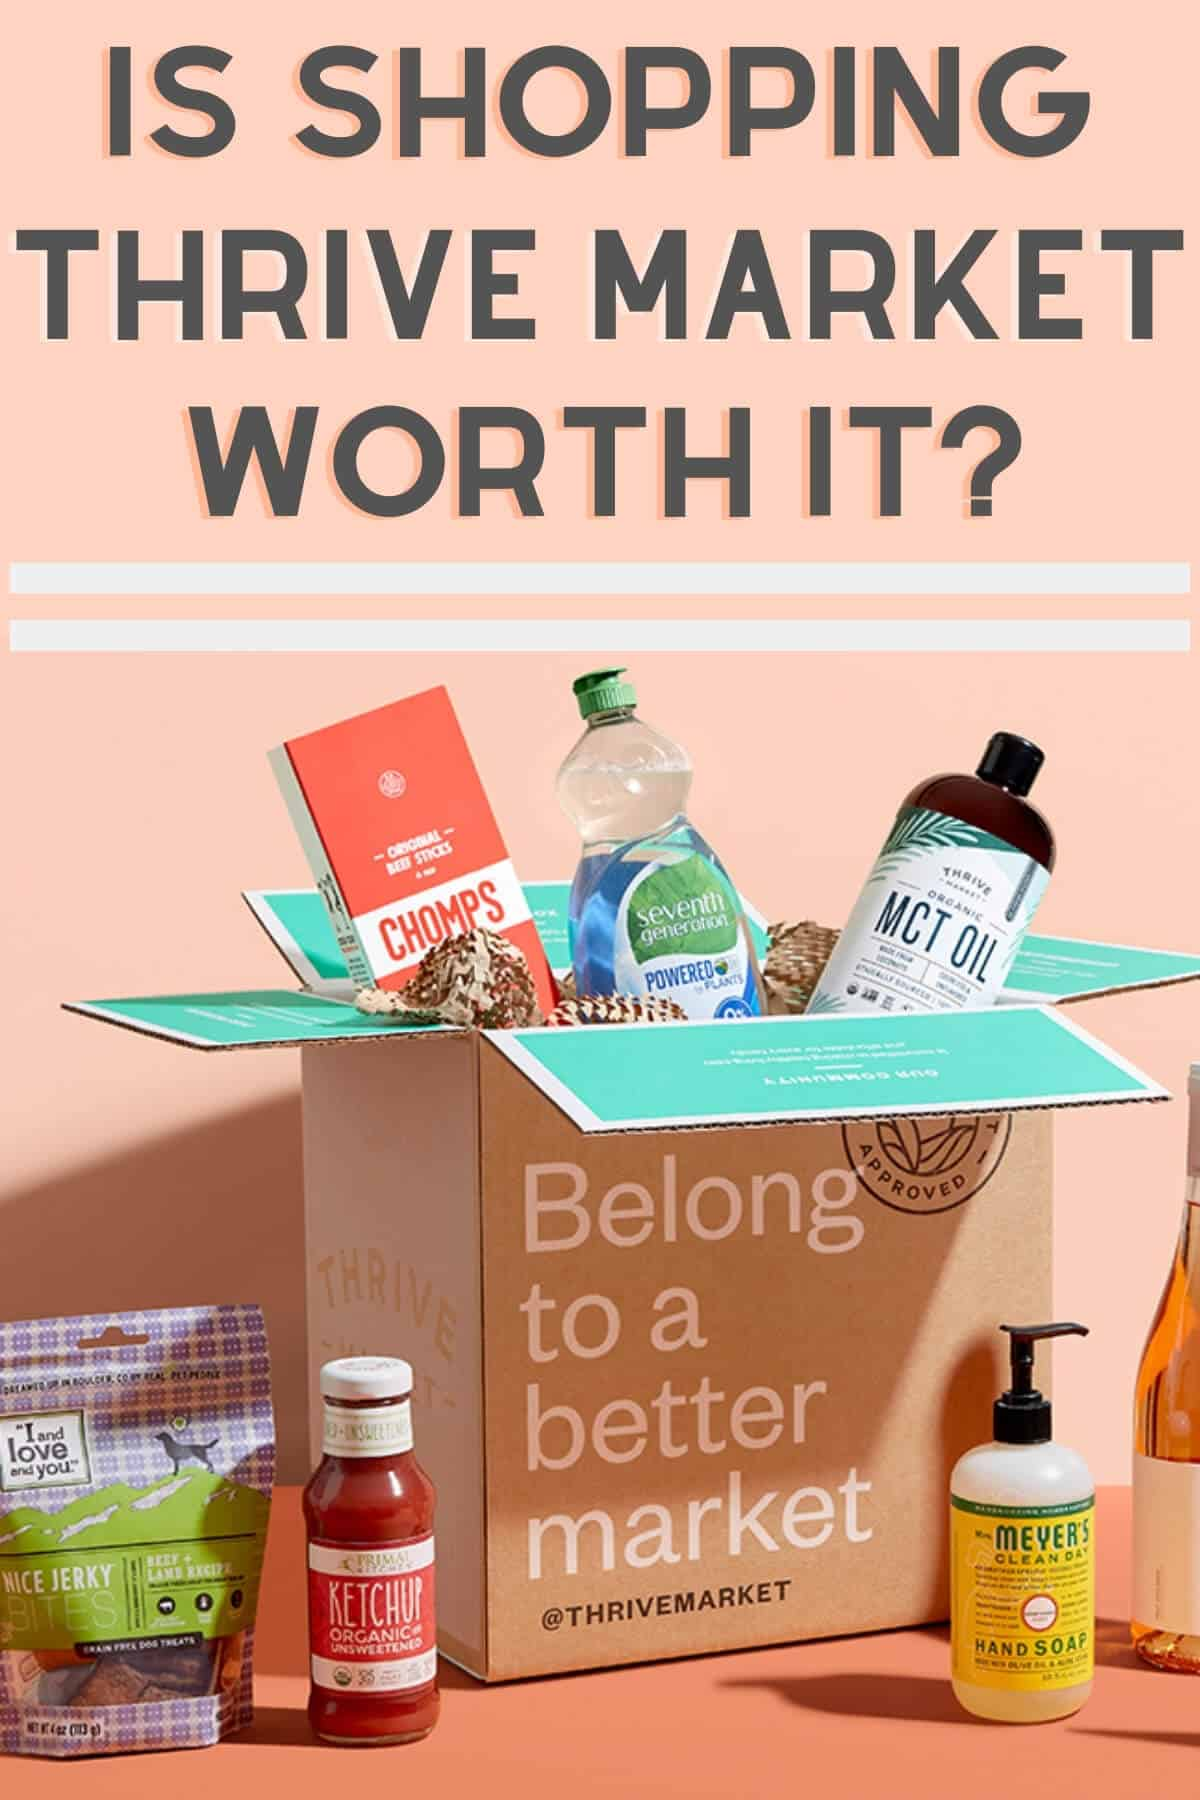 is thrive market worth it cover image